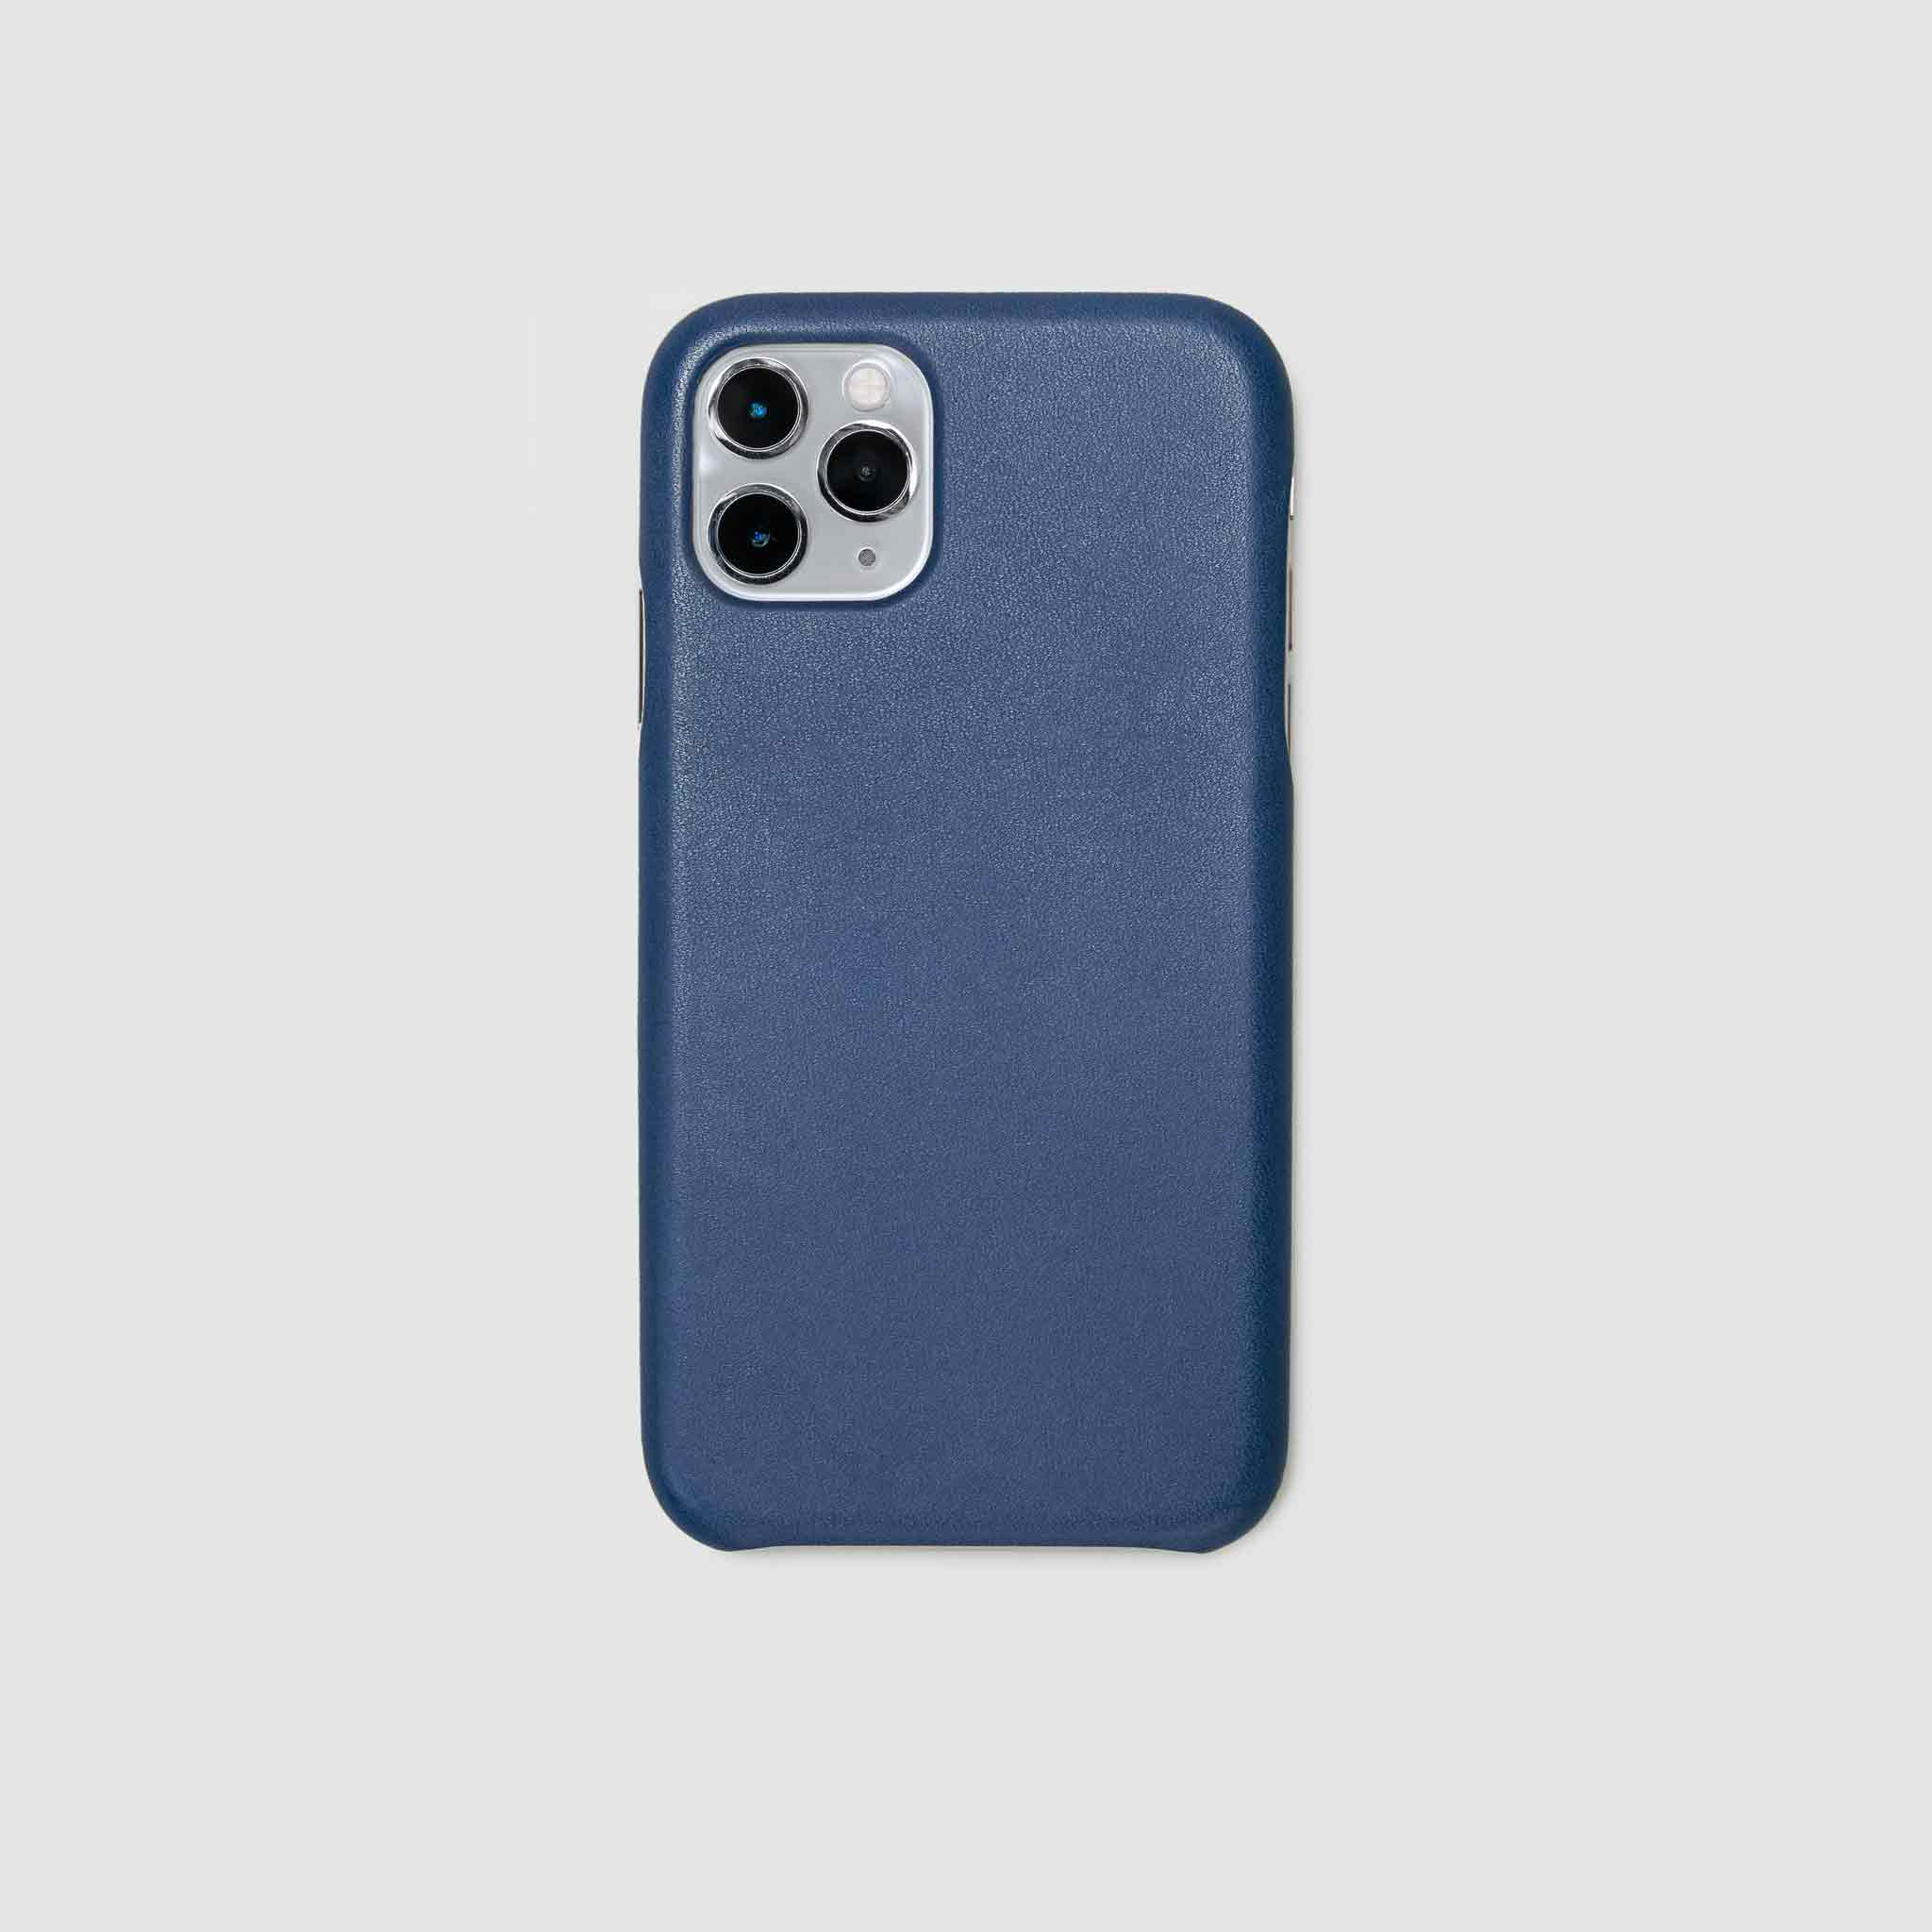 anson calder iphone case french calfskin 11 eleven pro max leather  !iphone11pro-iphone11promax *hover _cobalt